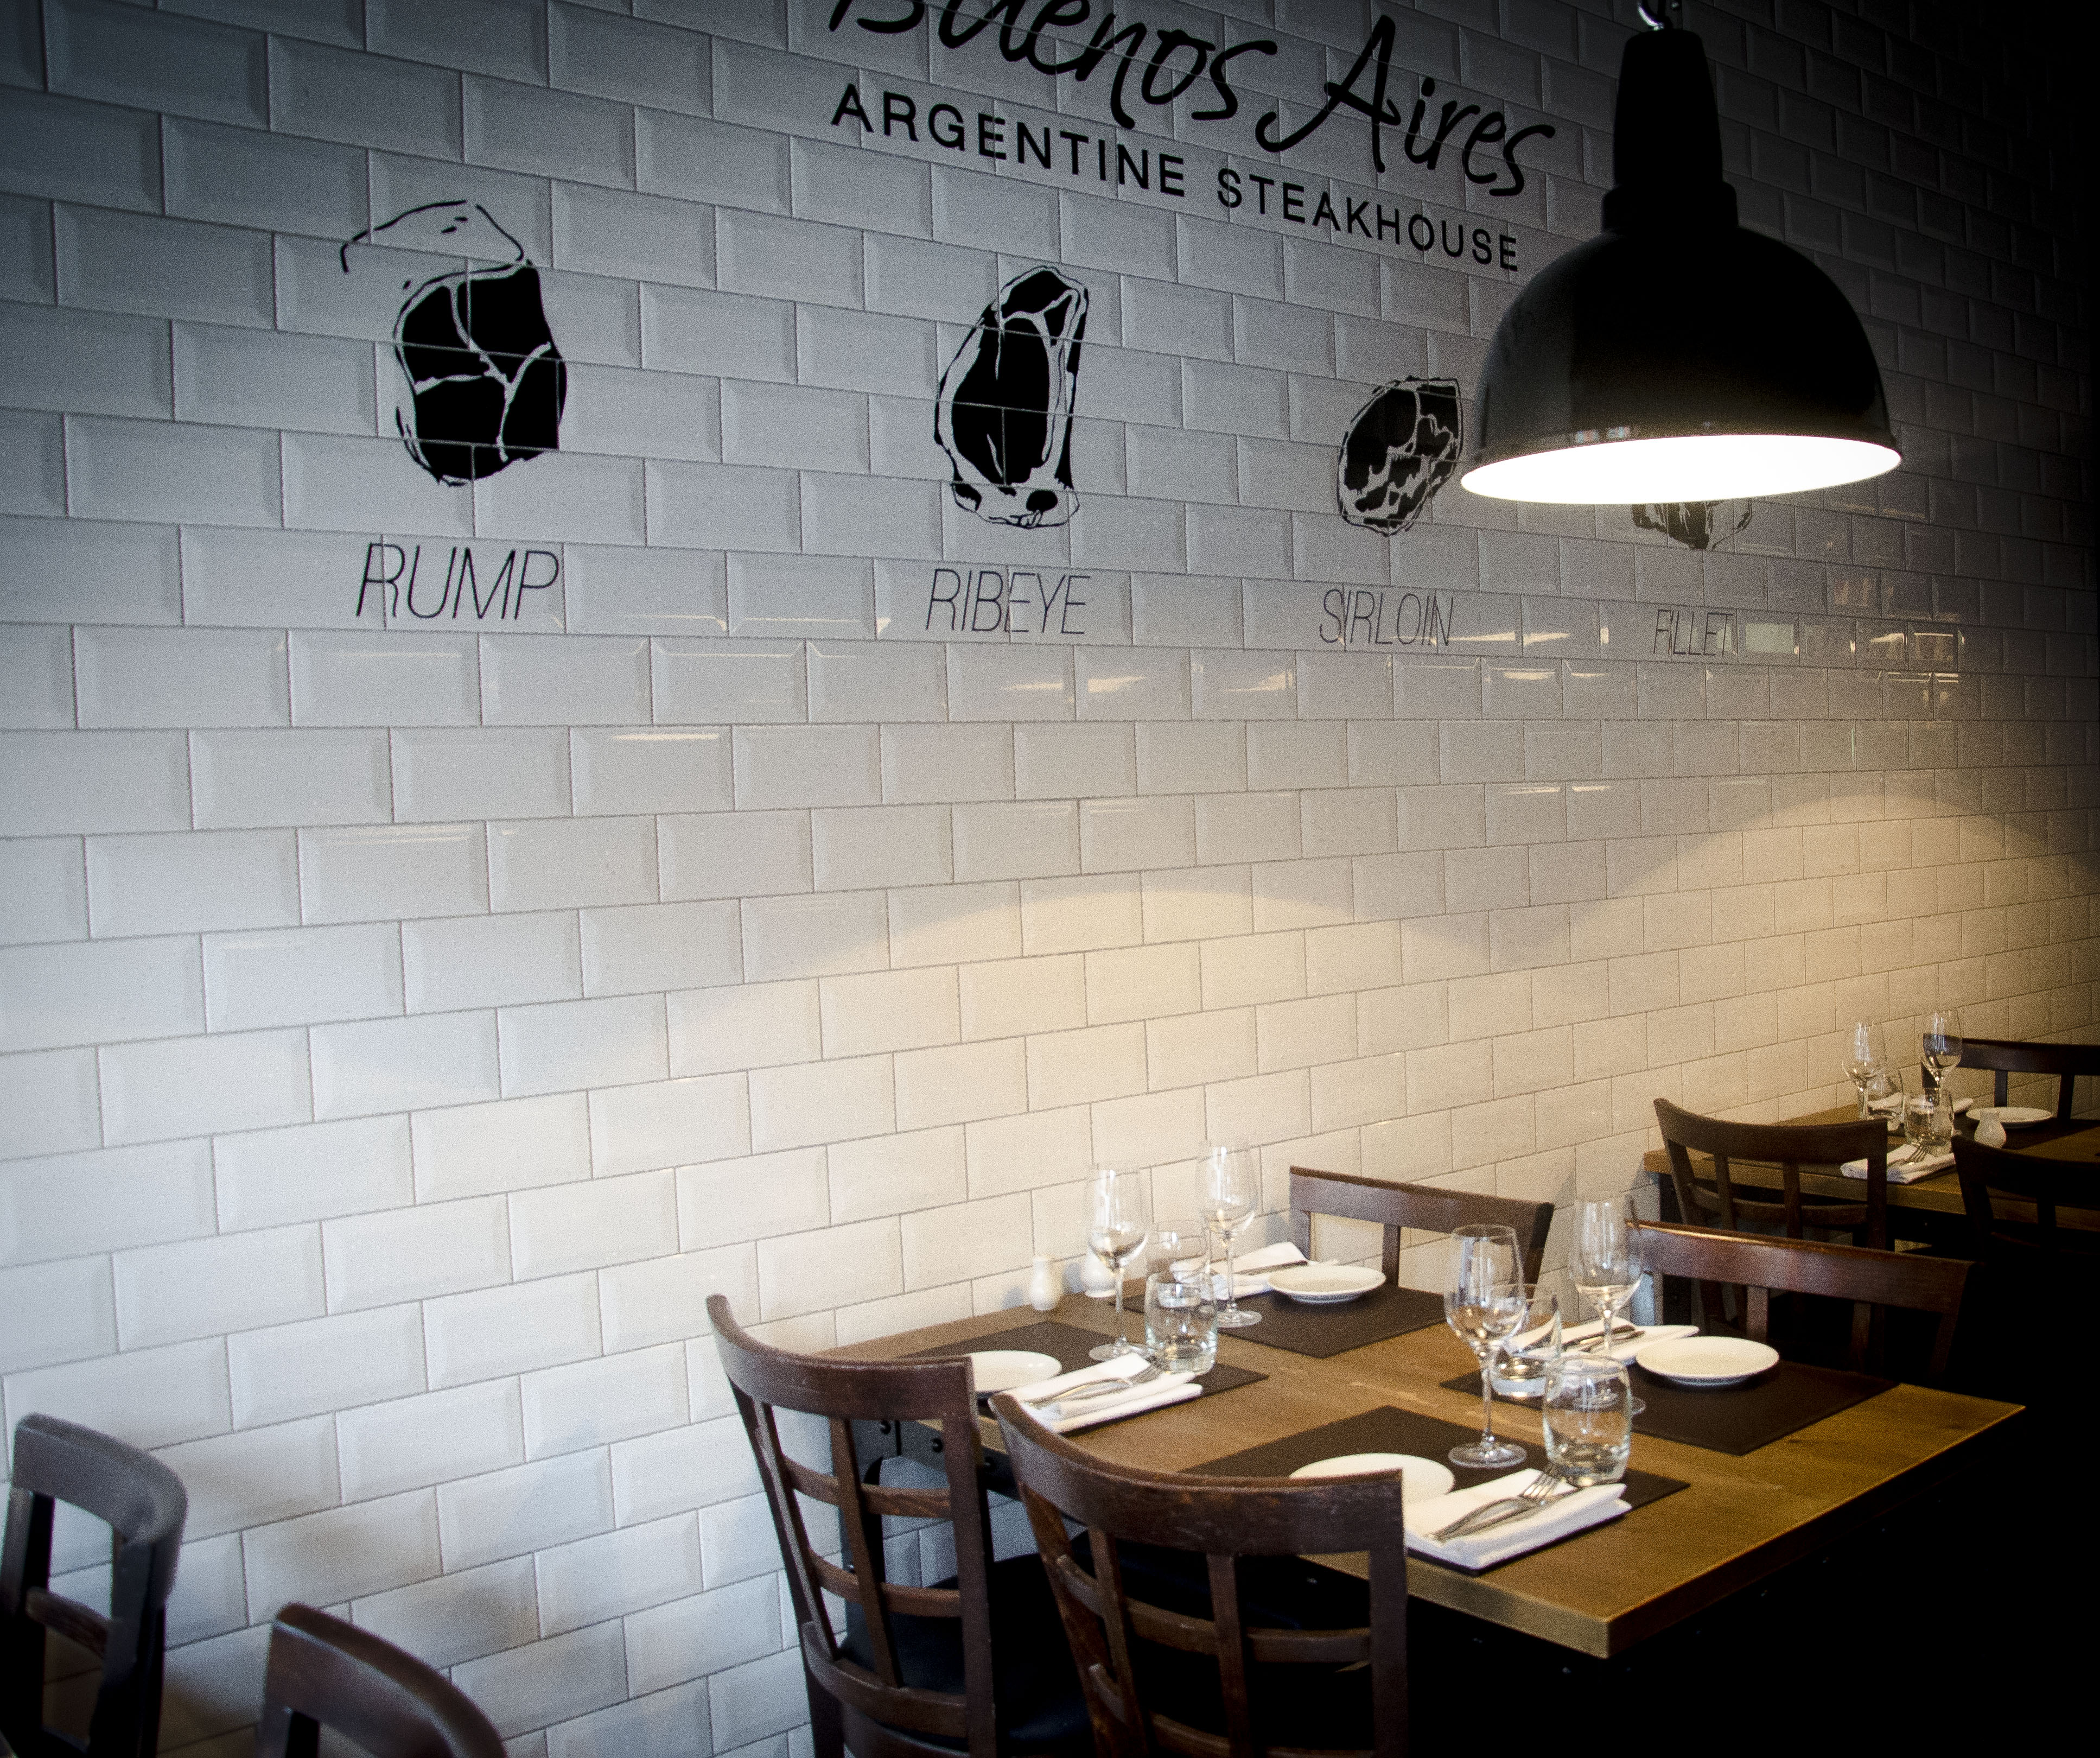 Image of Buenos Aires Argentine Steakhouse - Wimbledon